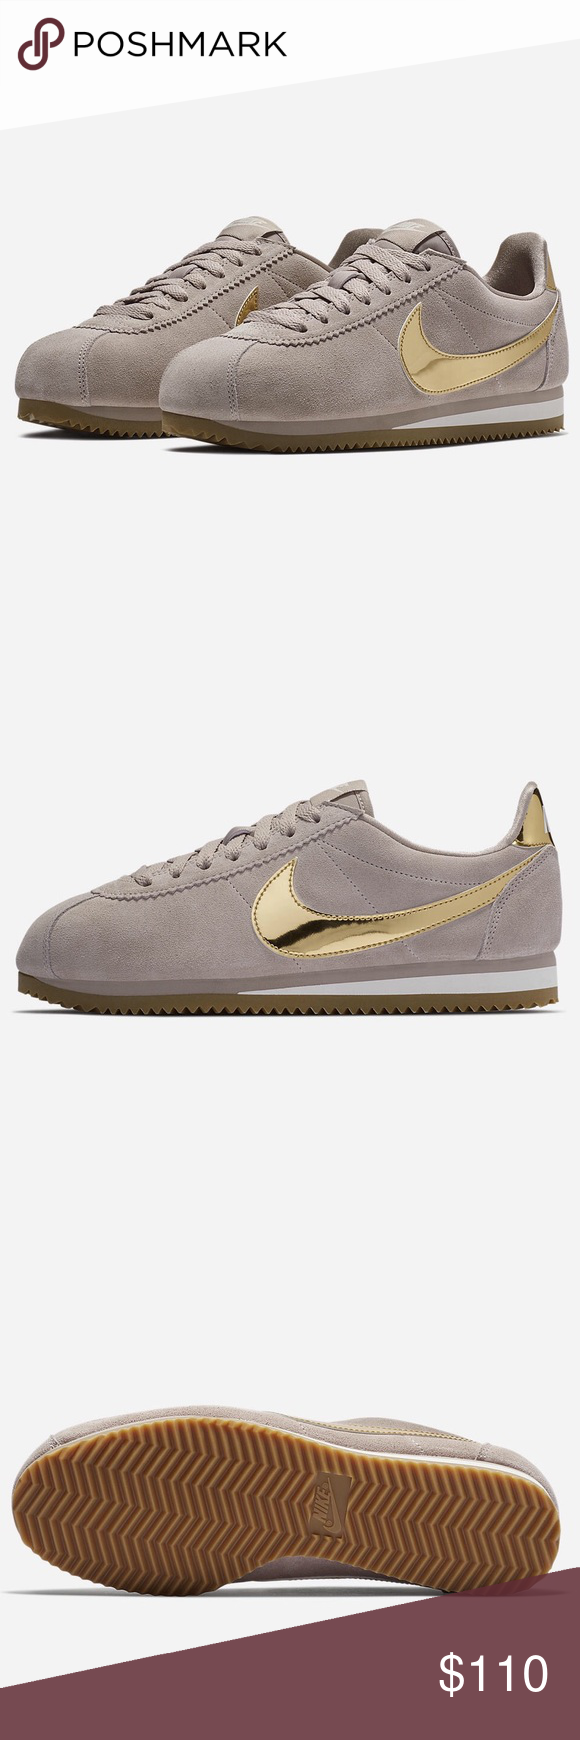 hot new products delicate colors new authentic NWT Women's Nike Classic Cortez SE Vintage Condition: Brand ...